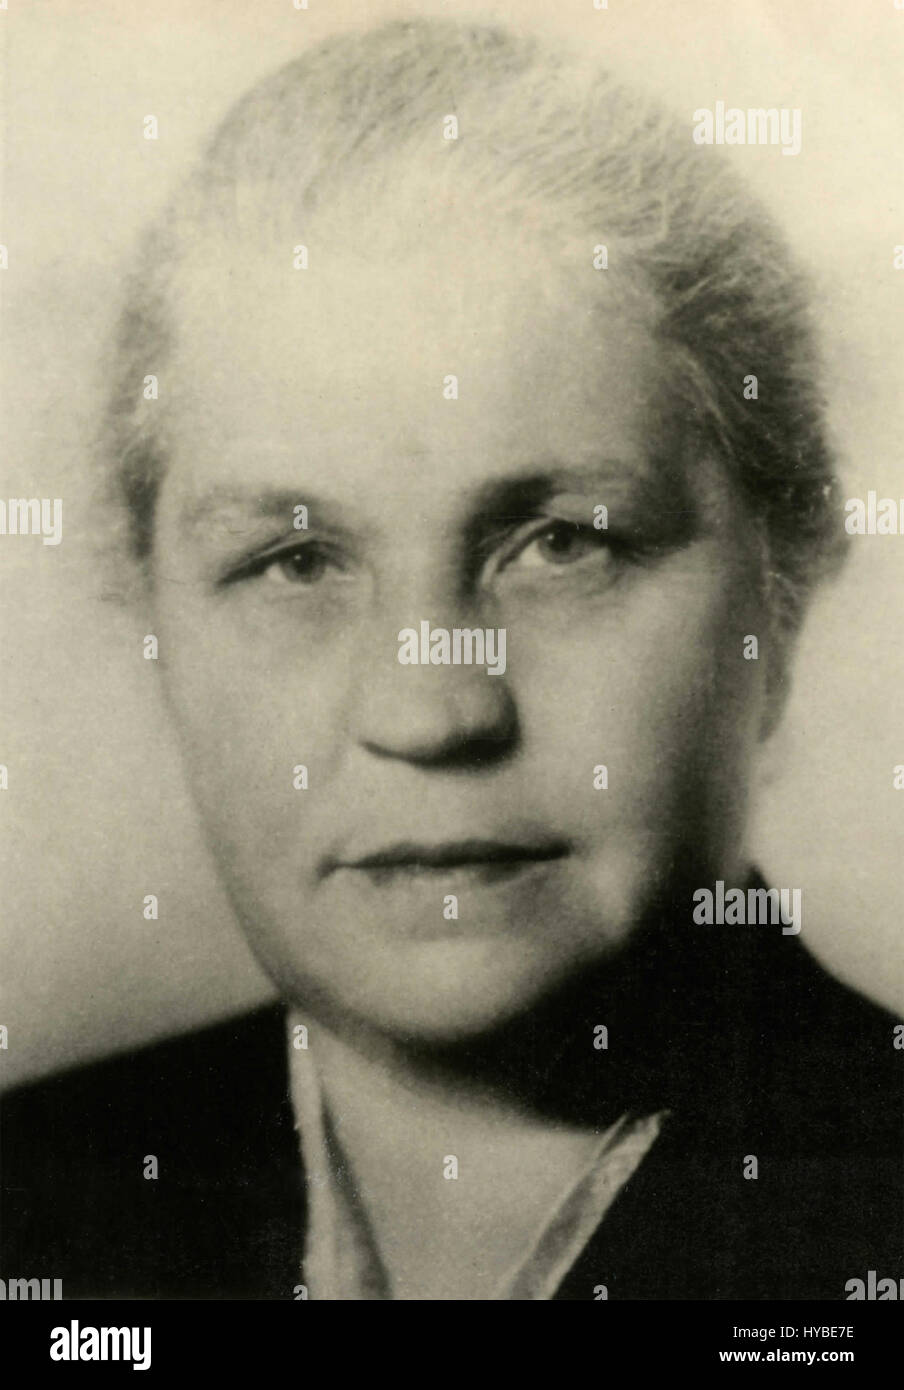 Mrs. Muravjeva, member of the Soviet Presidium, USSR - Stock Image